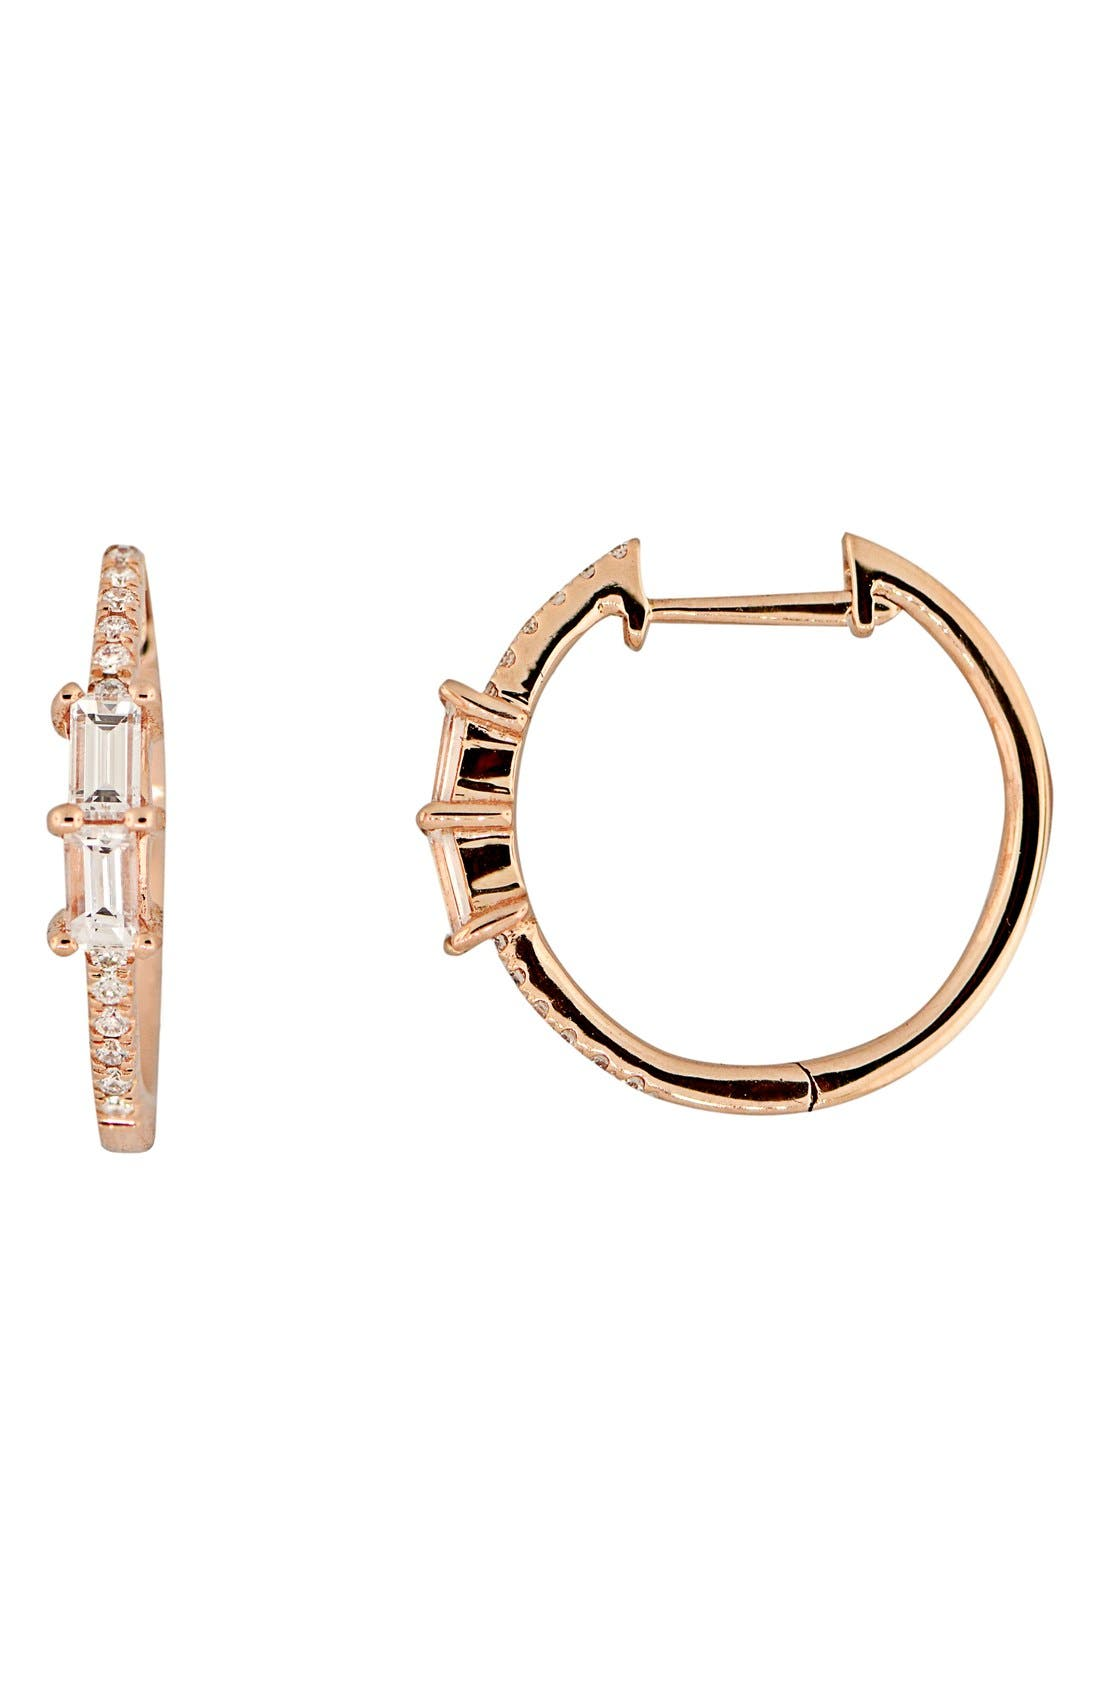 Diamond Hoop Earrings,                             Main thumbnail 1, color,                             ROSE GOLD